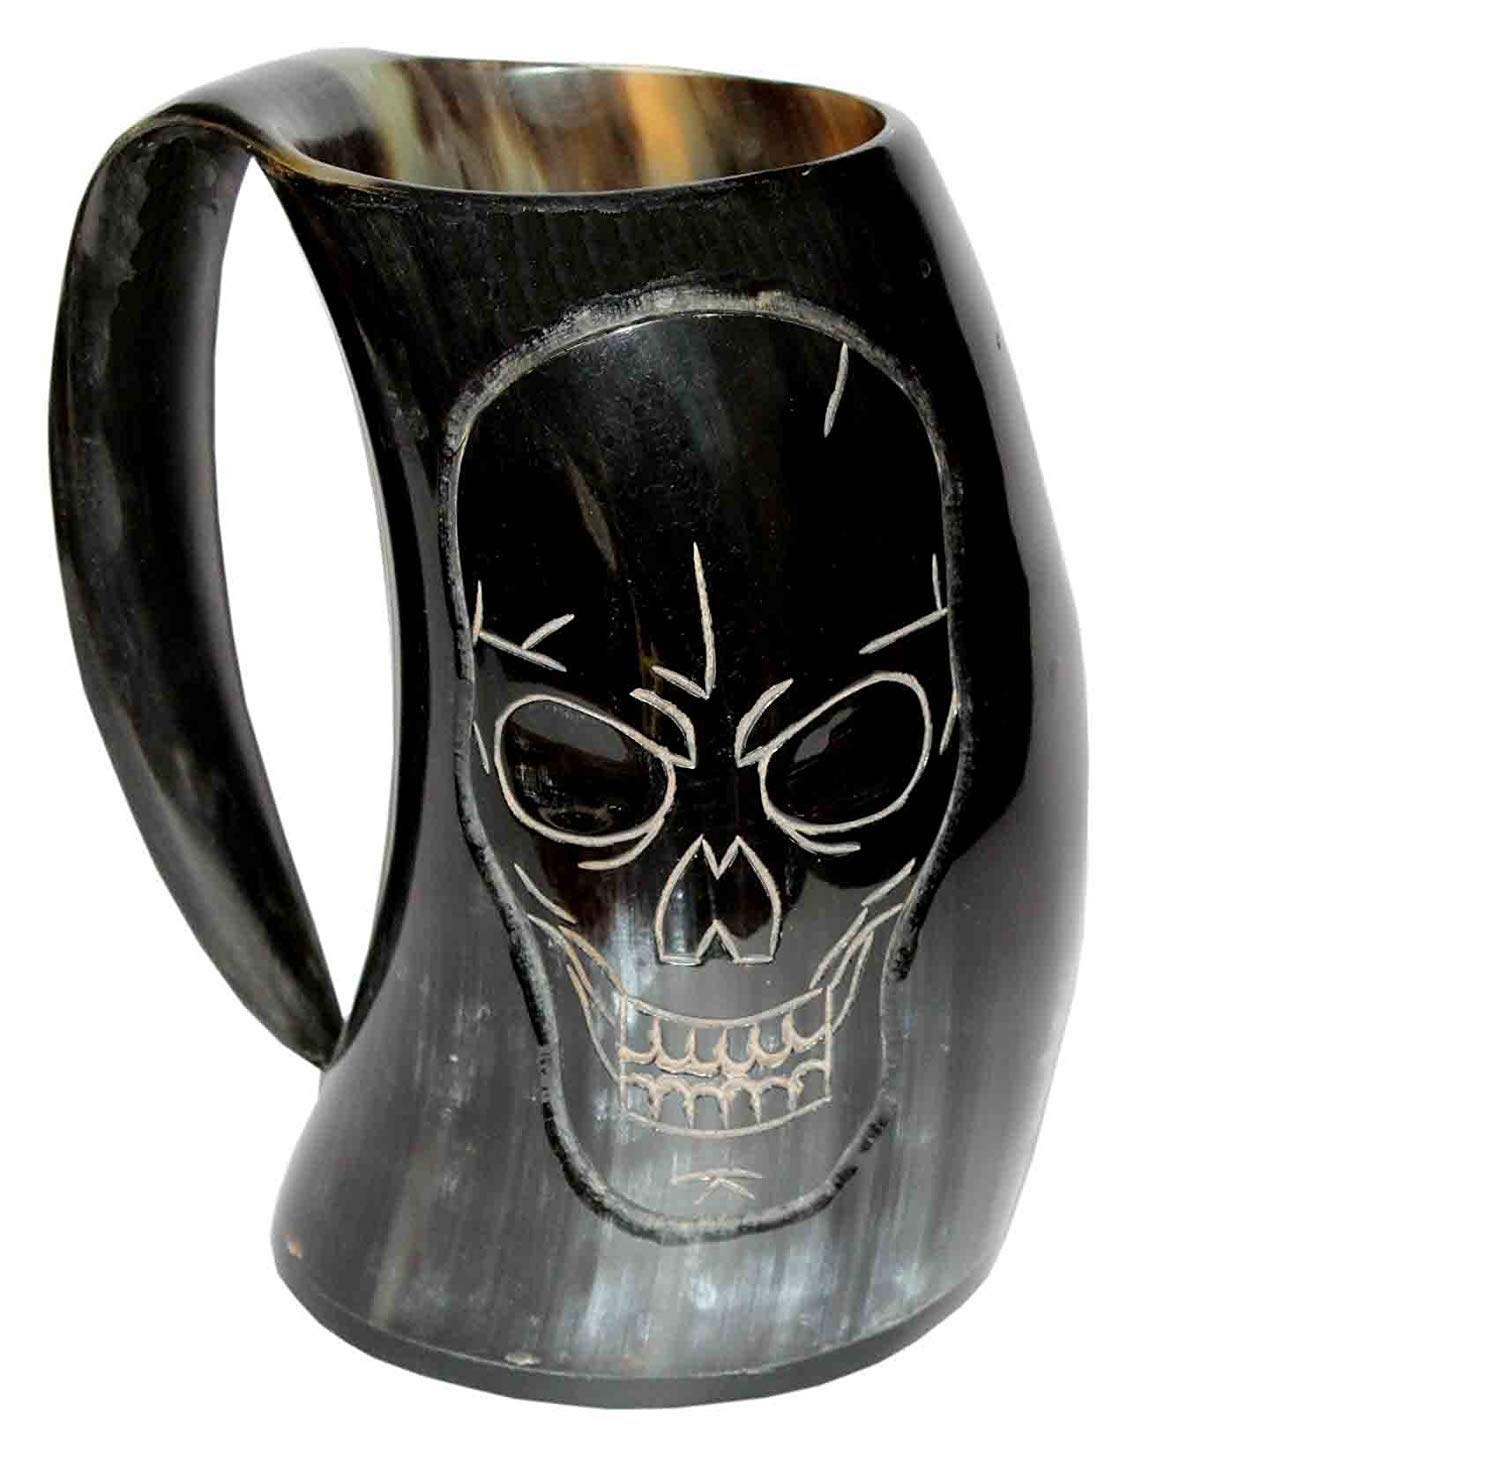 5MoonSun5's VIKING DRINKING HORN MUG Handcrafted Ox Cup Goblet - Drink Mead & Beer Like Game of Thrones With This Large Ale Stein - A Perfect Present For Real Men traditionally craft skull (HBM-SKL16)